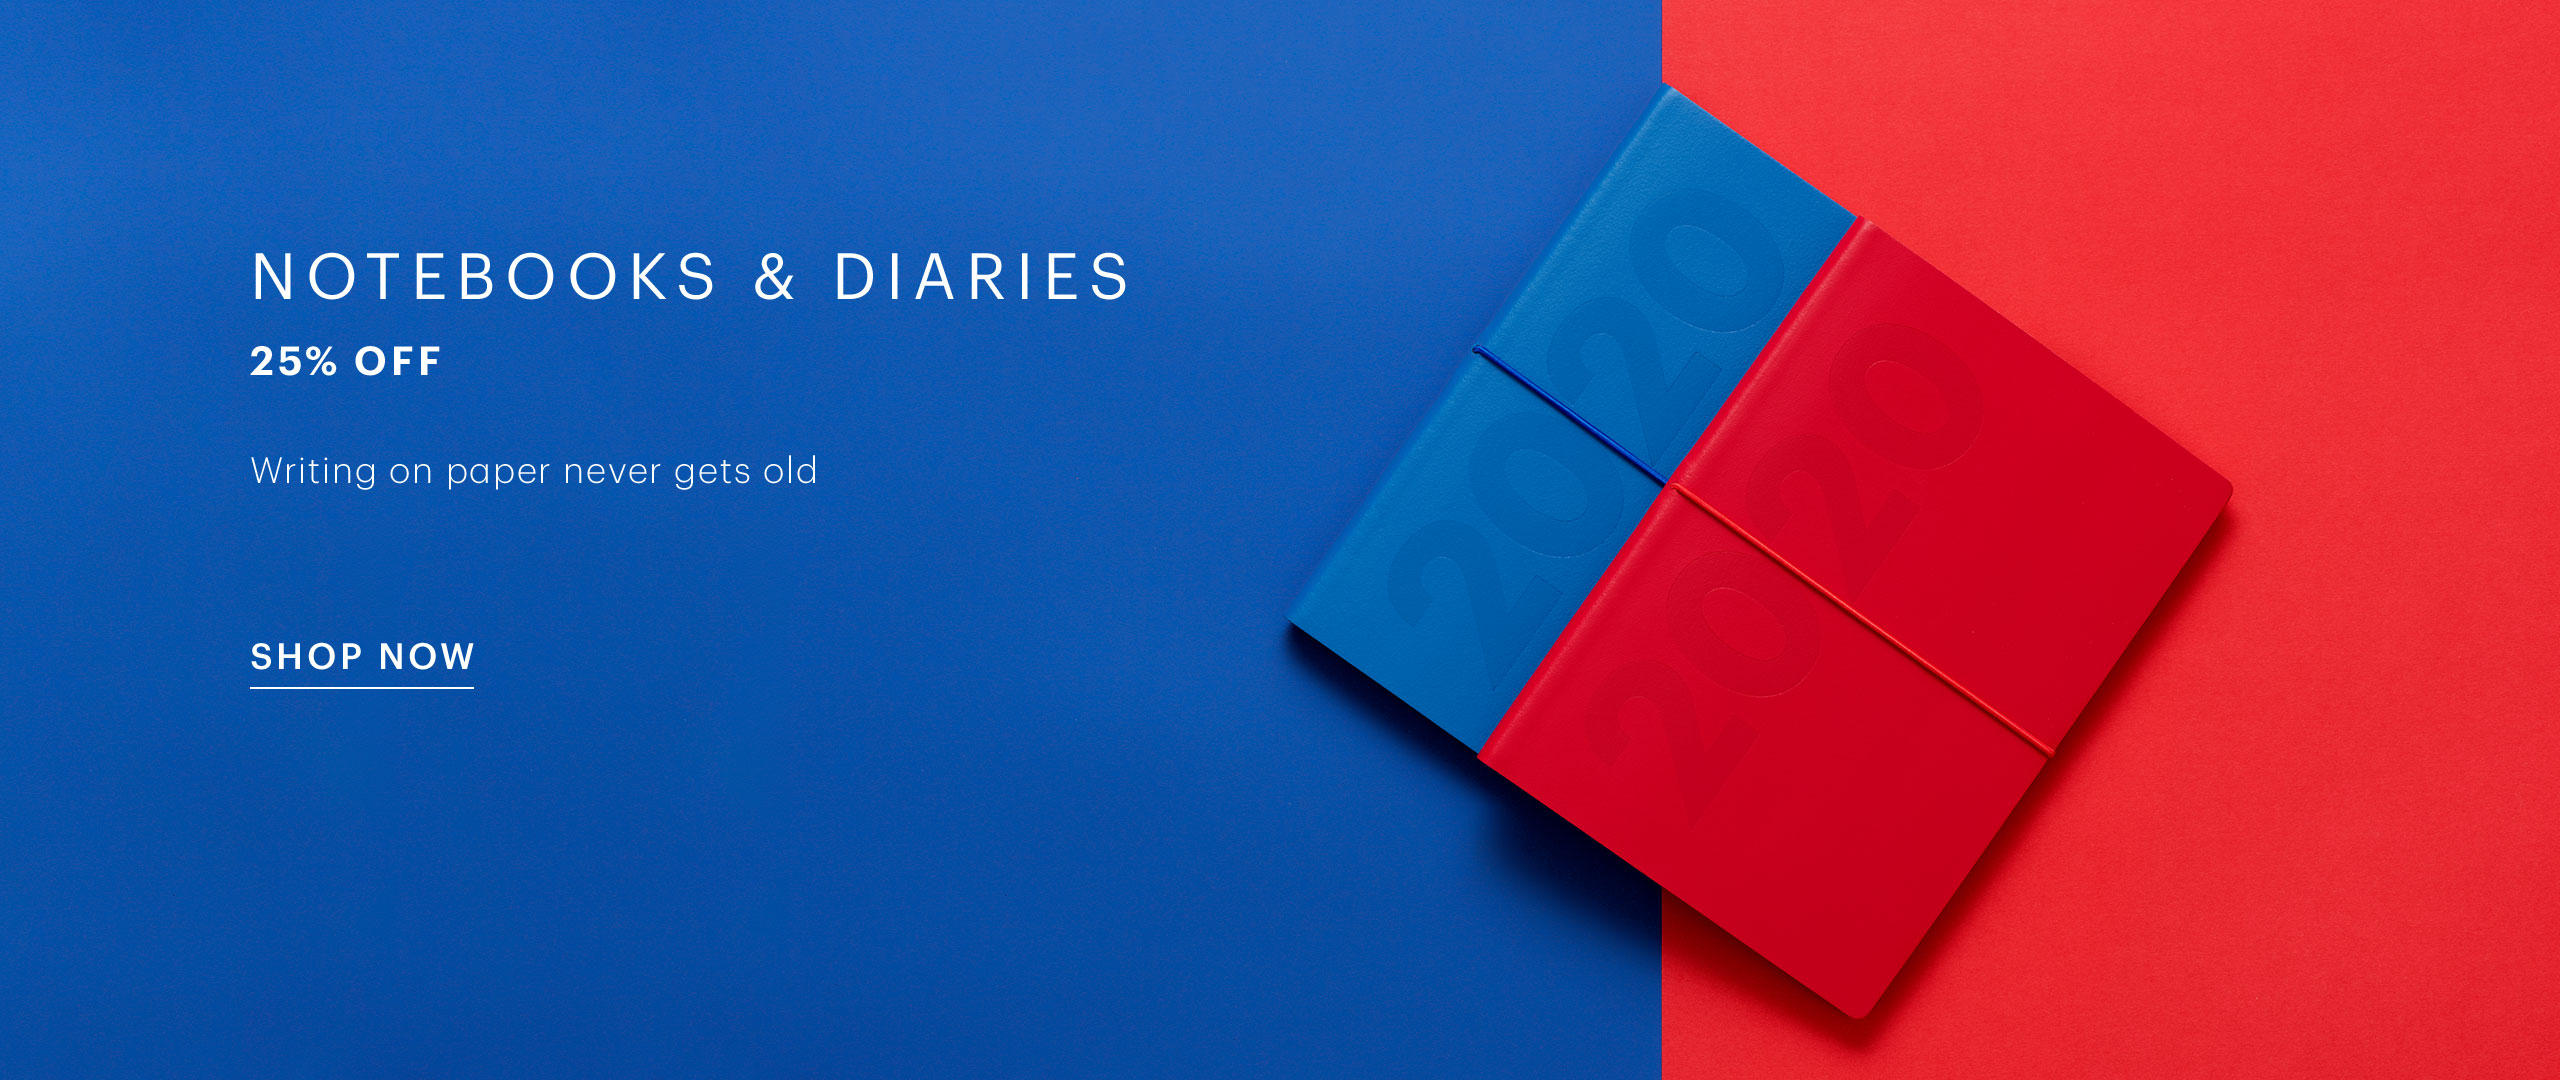 [OR] BEU EN - Notebooks & Diaries